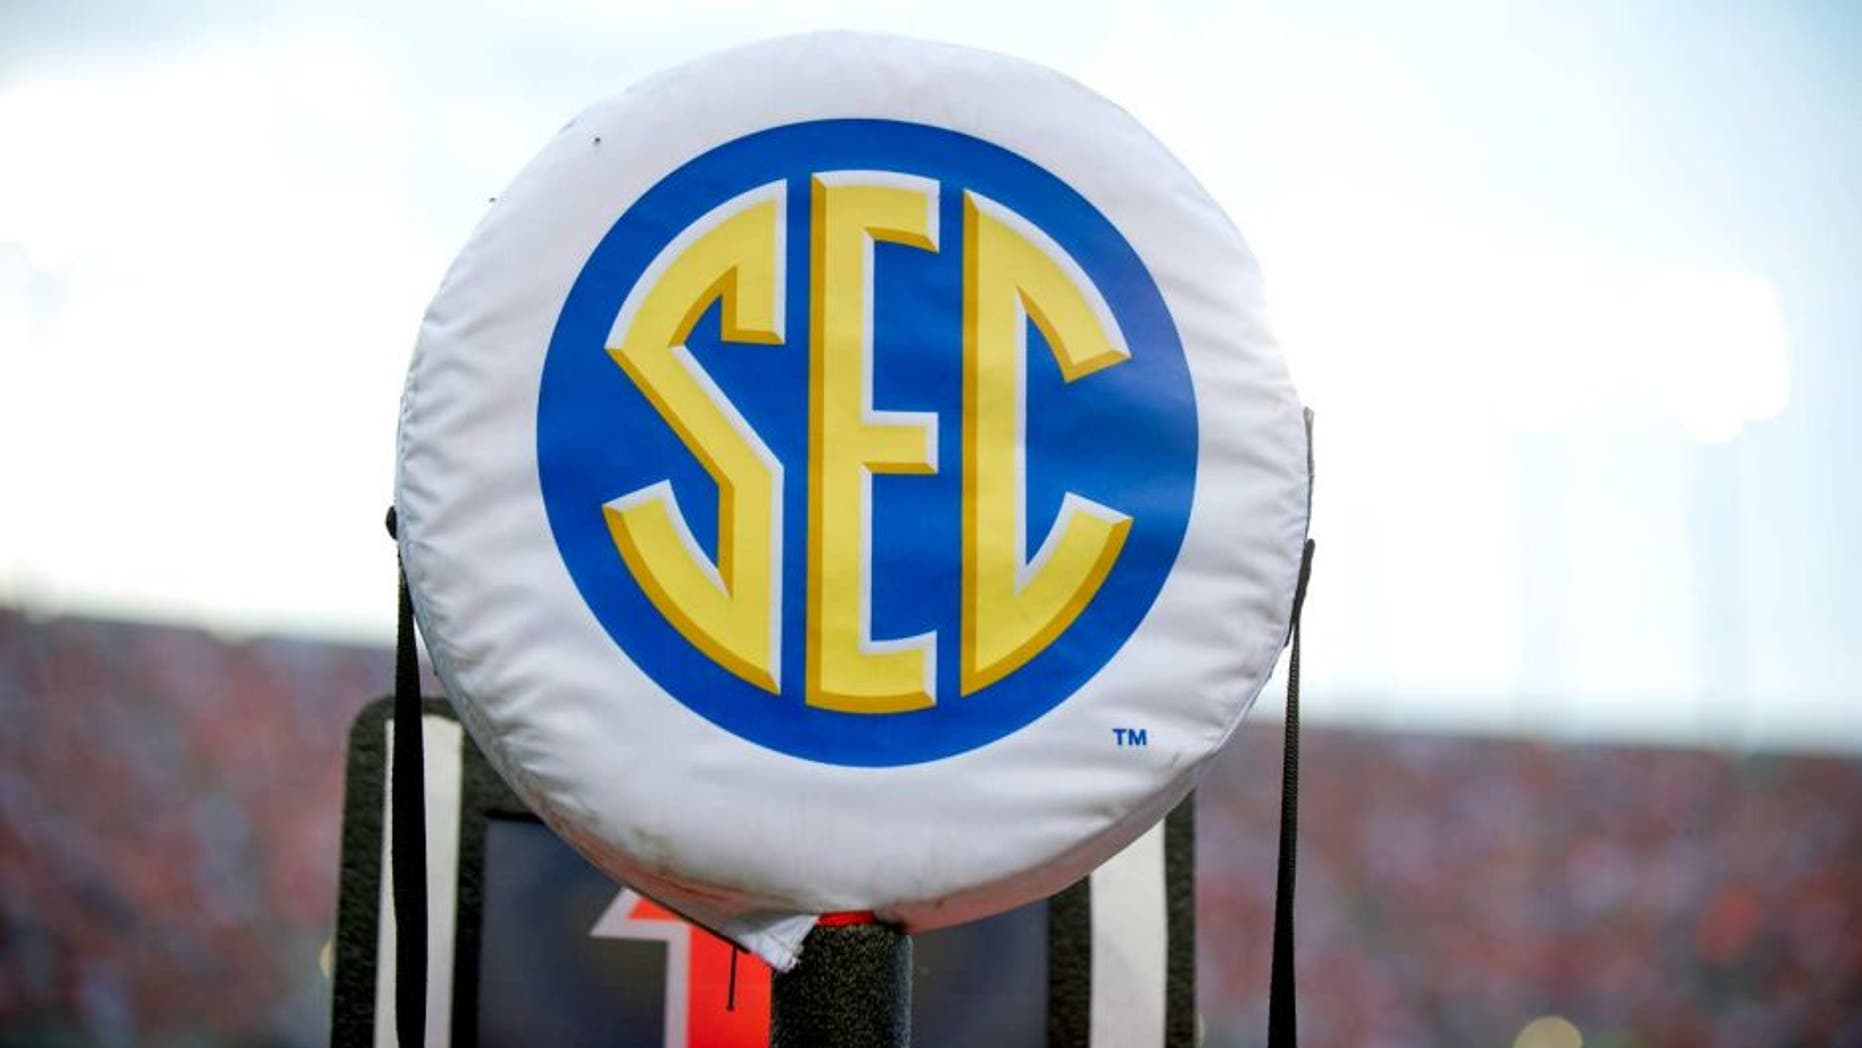 AUBURN, AL - AUGUST 31: A SEC logo on a field marker during Auburn's game against the Washington State Cougars on August 31, 2013 at Jordan-Hare Stadium in Auburn, Alabama. At halftime Auburn leads Washington State 25-21. (Photo by Michael Chang/Getty Images)